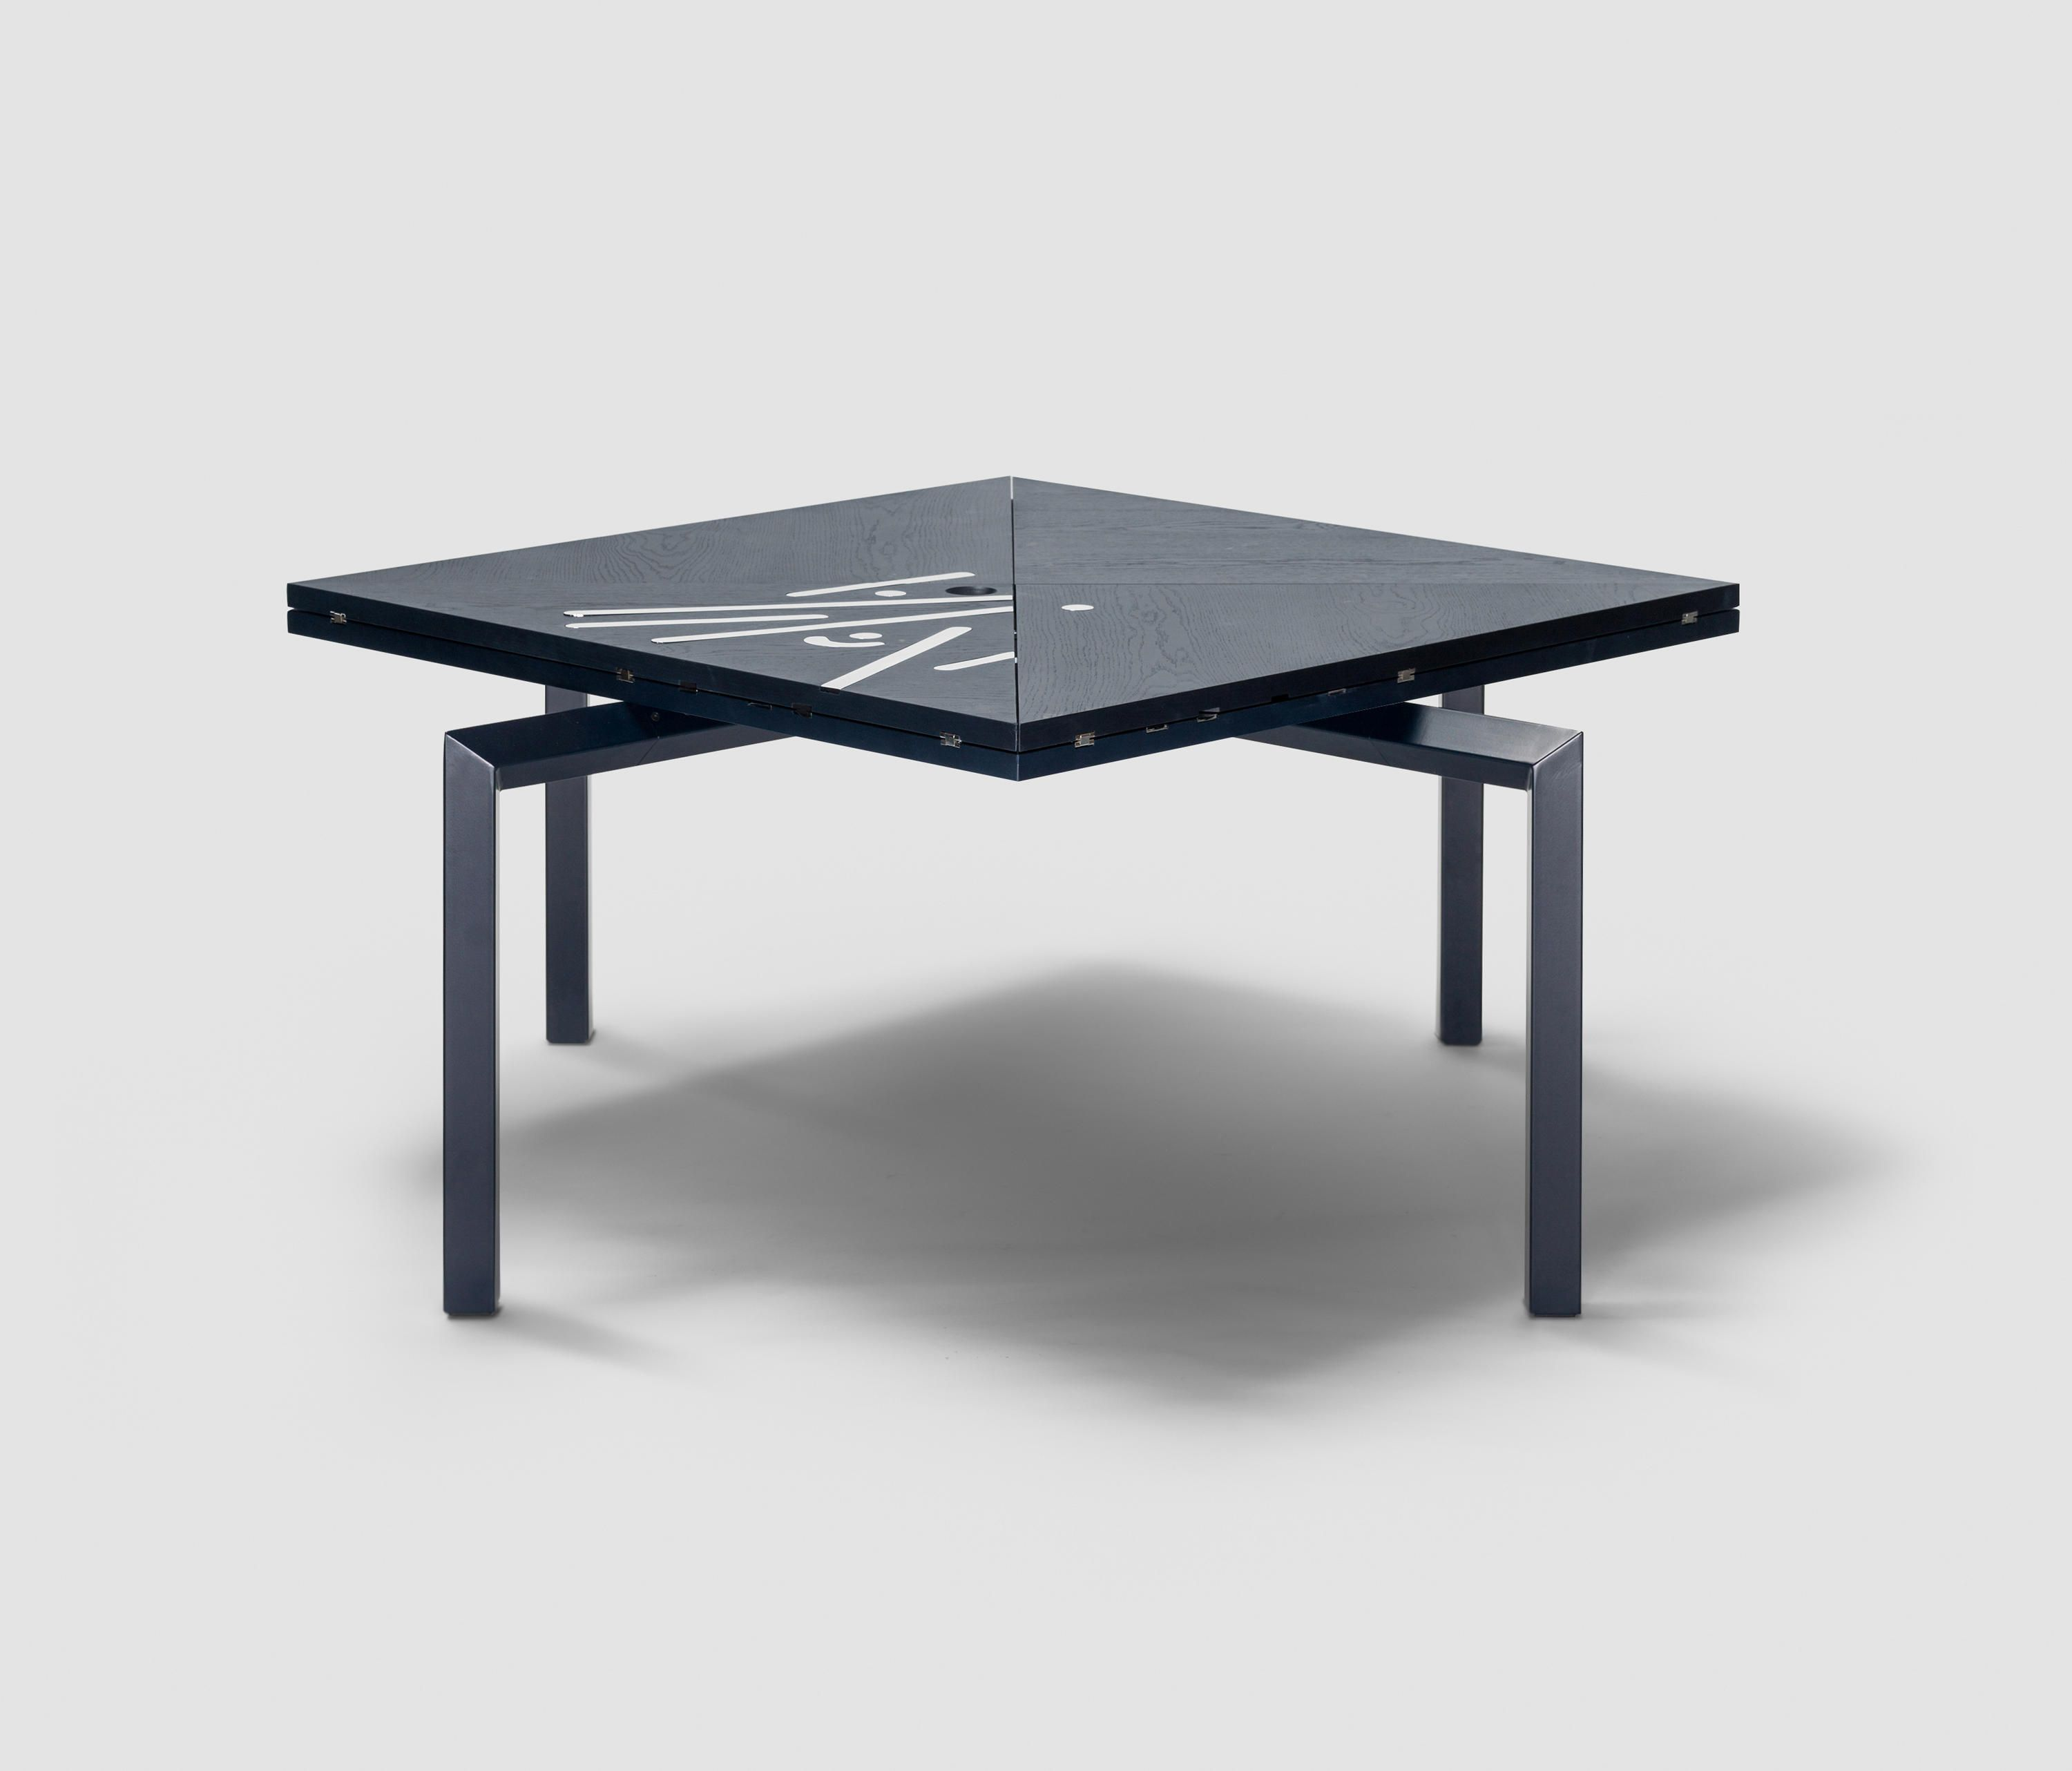 Alella Table By Lluis Clotet For Bd Barcelona Architonic